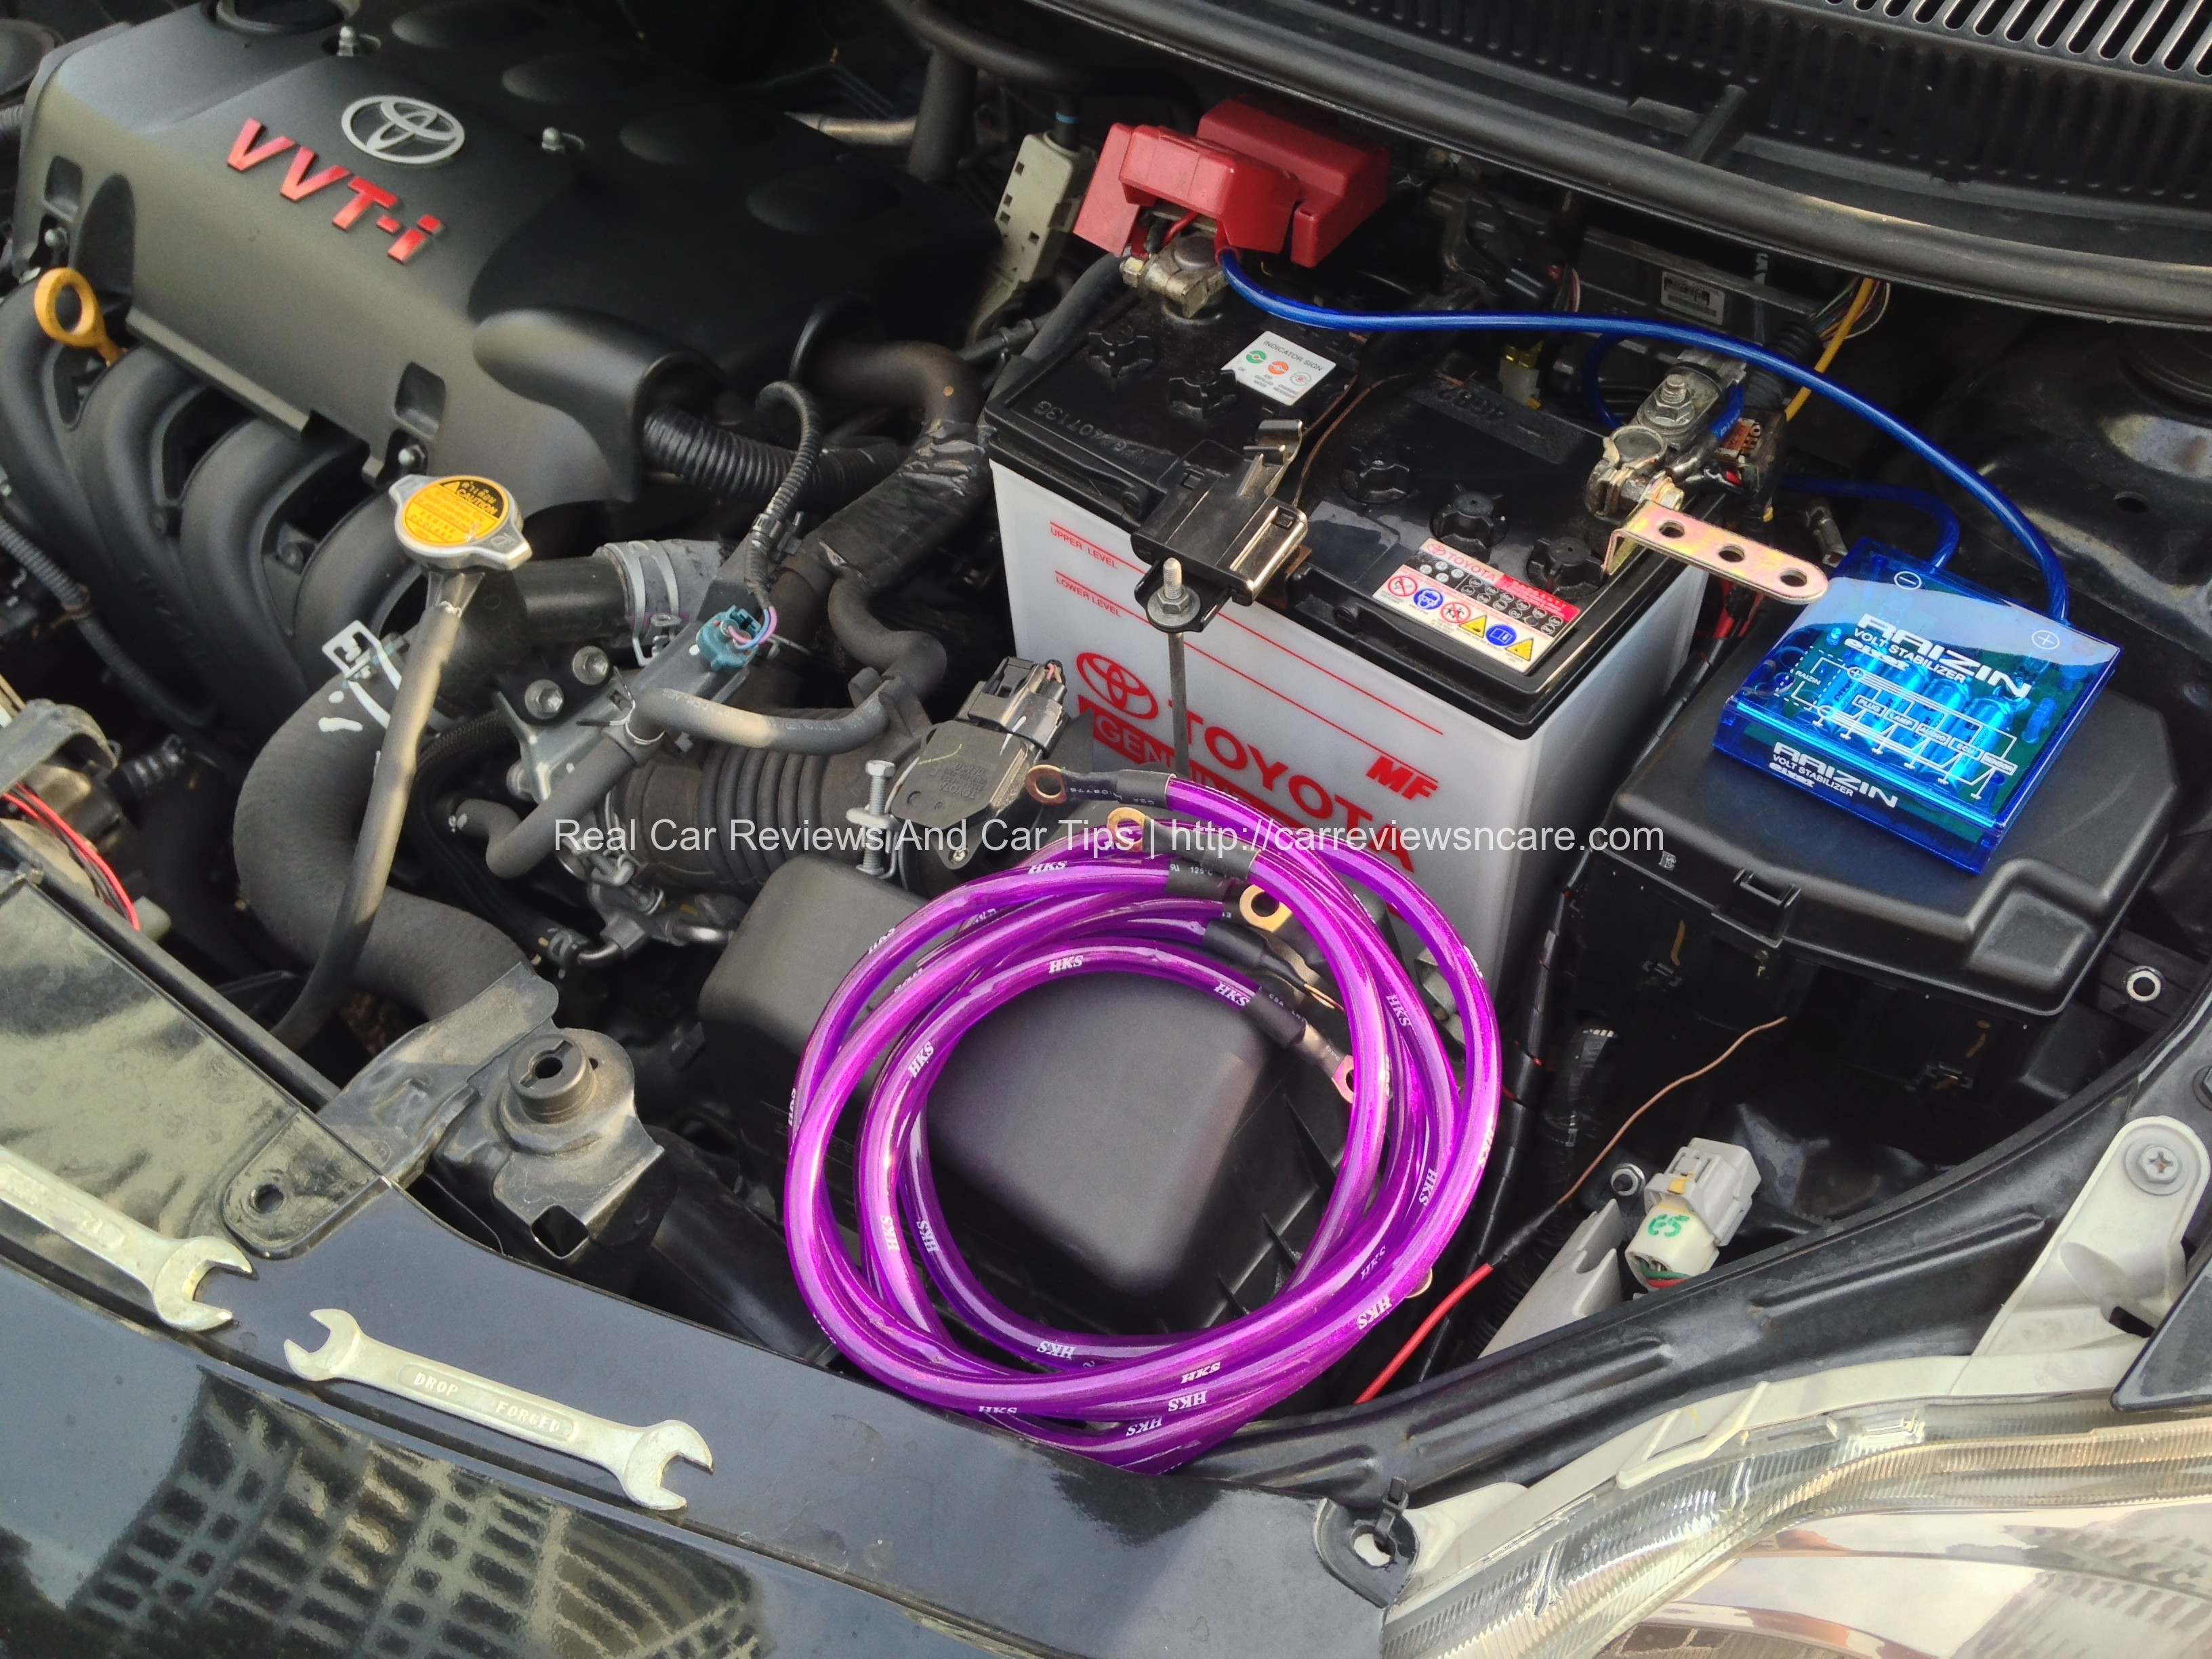 Grounding Cable Myvi Grounding Cable Hks Mega